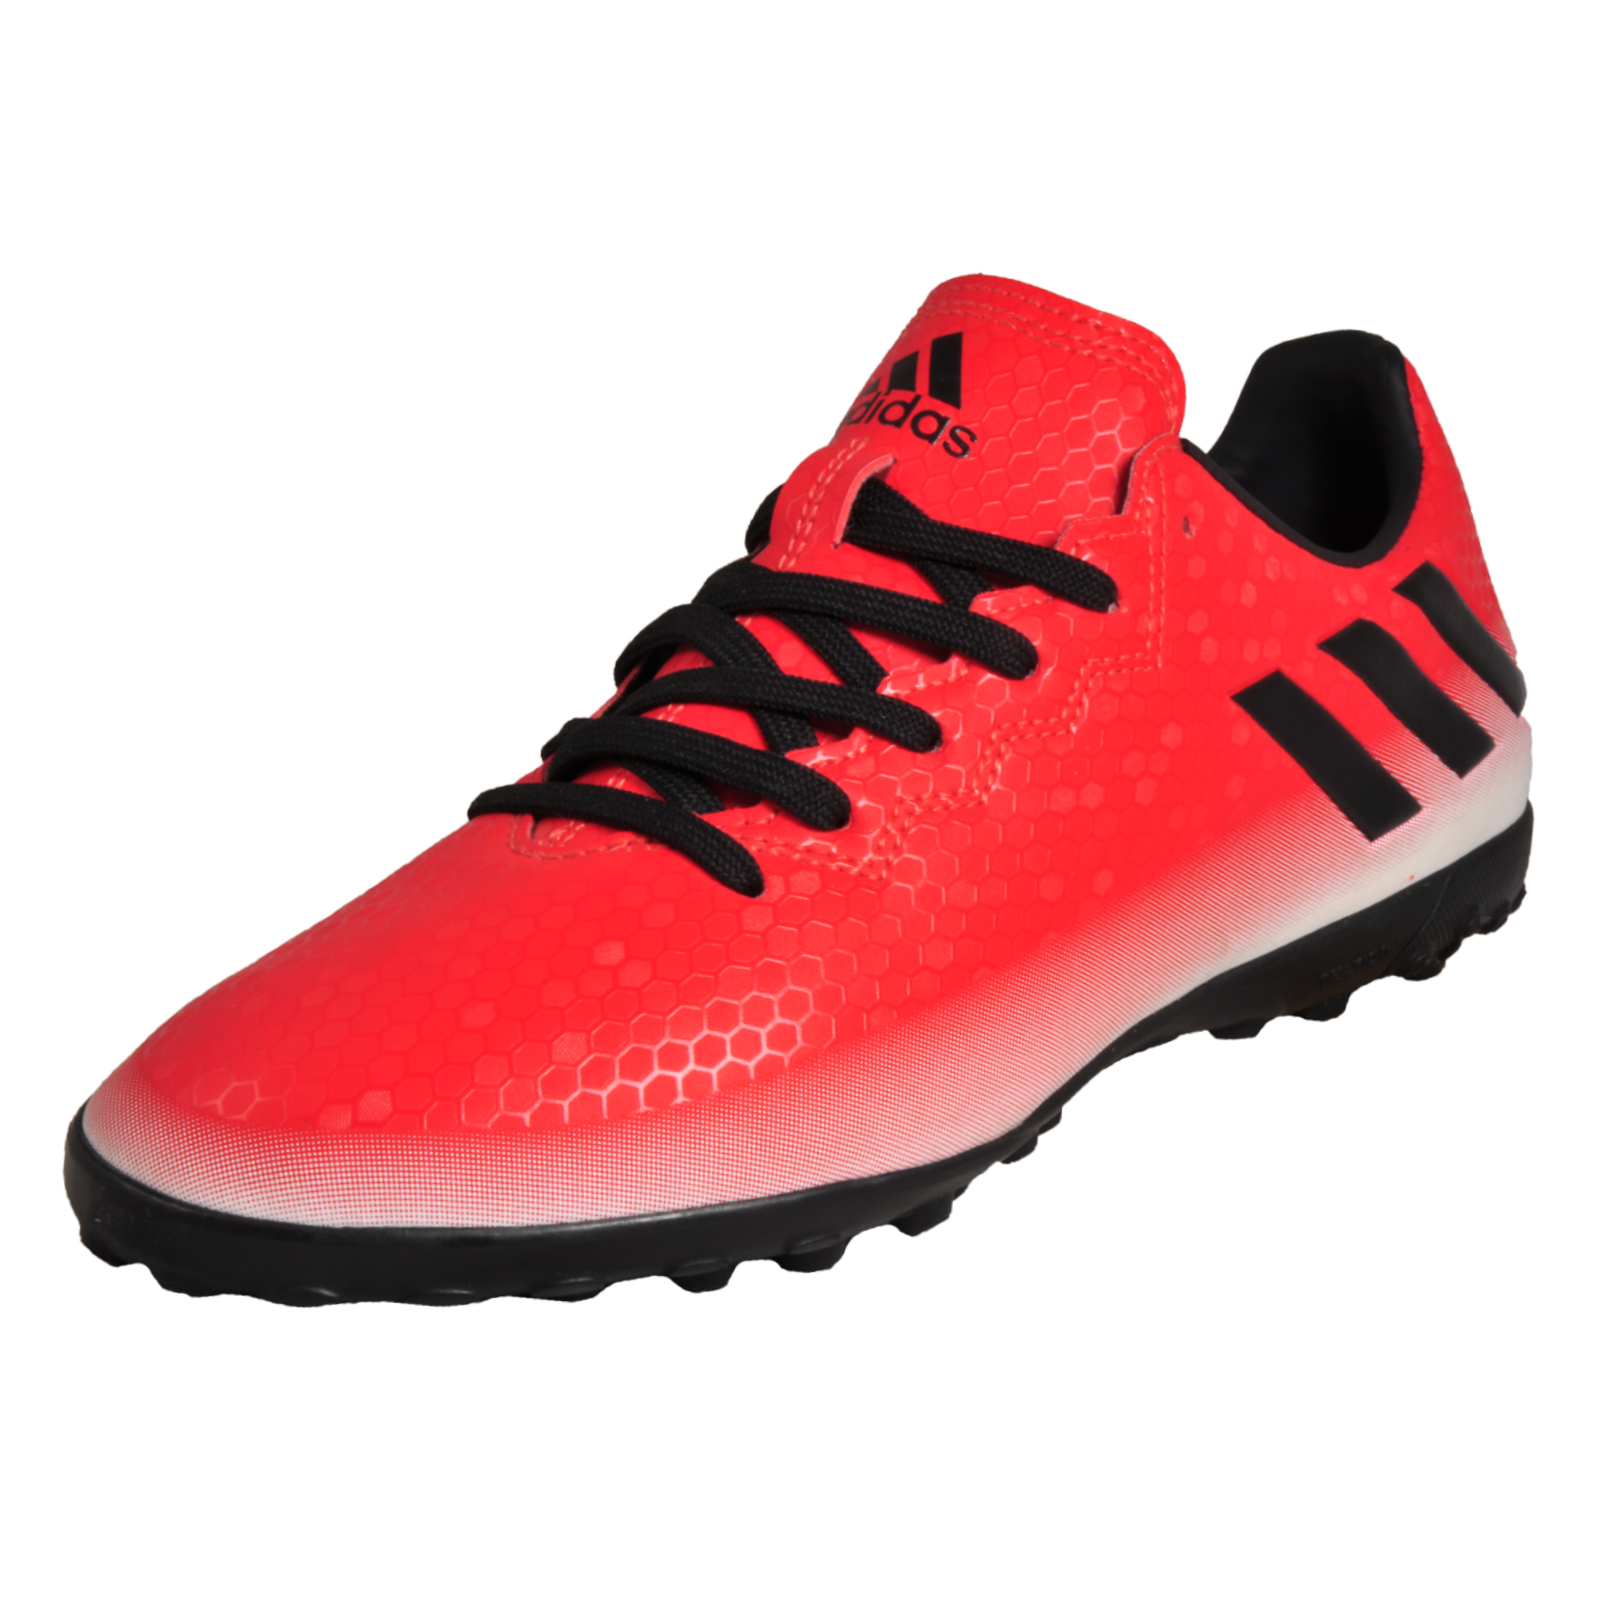 Adidas Messi 16.4 TF Mens Football Astro Turf Indoor Trainers Red  18e8557c41b